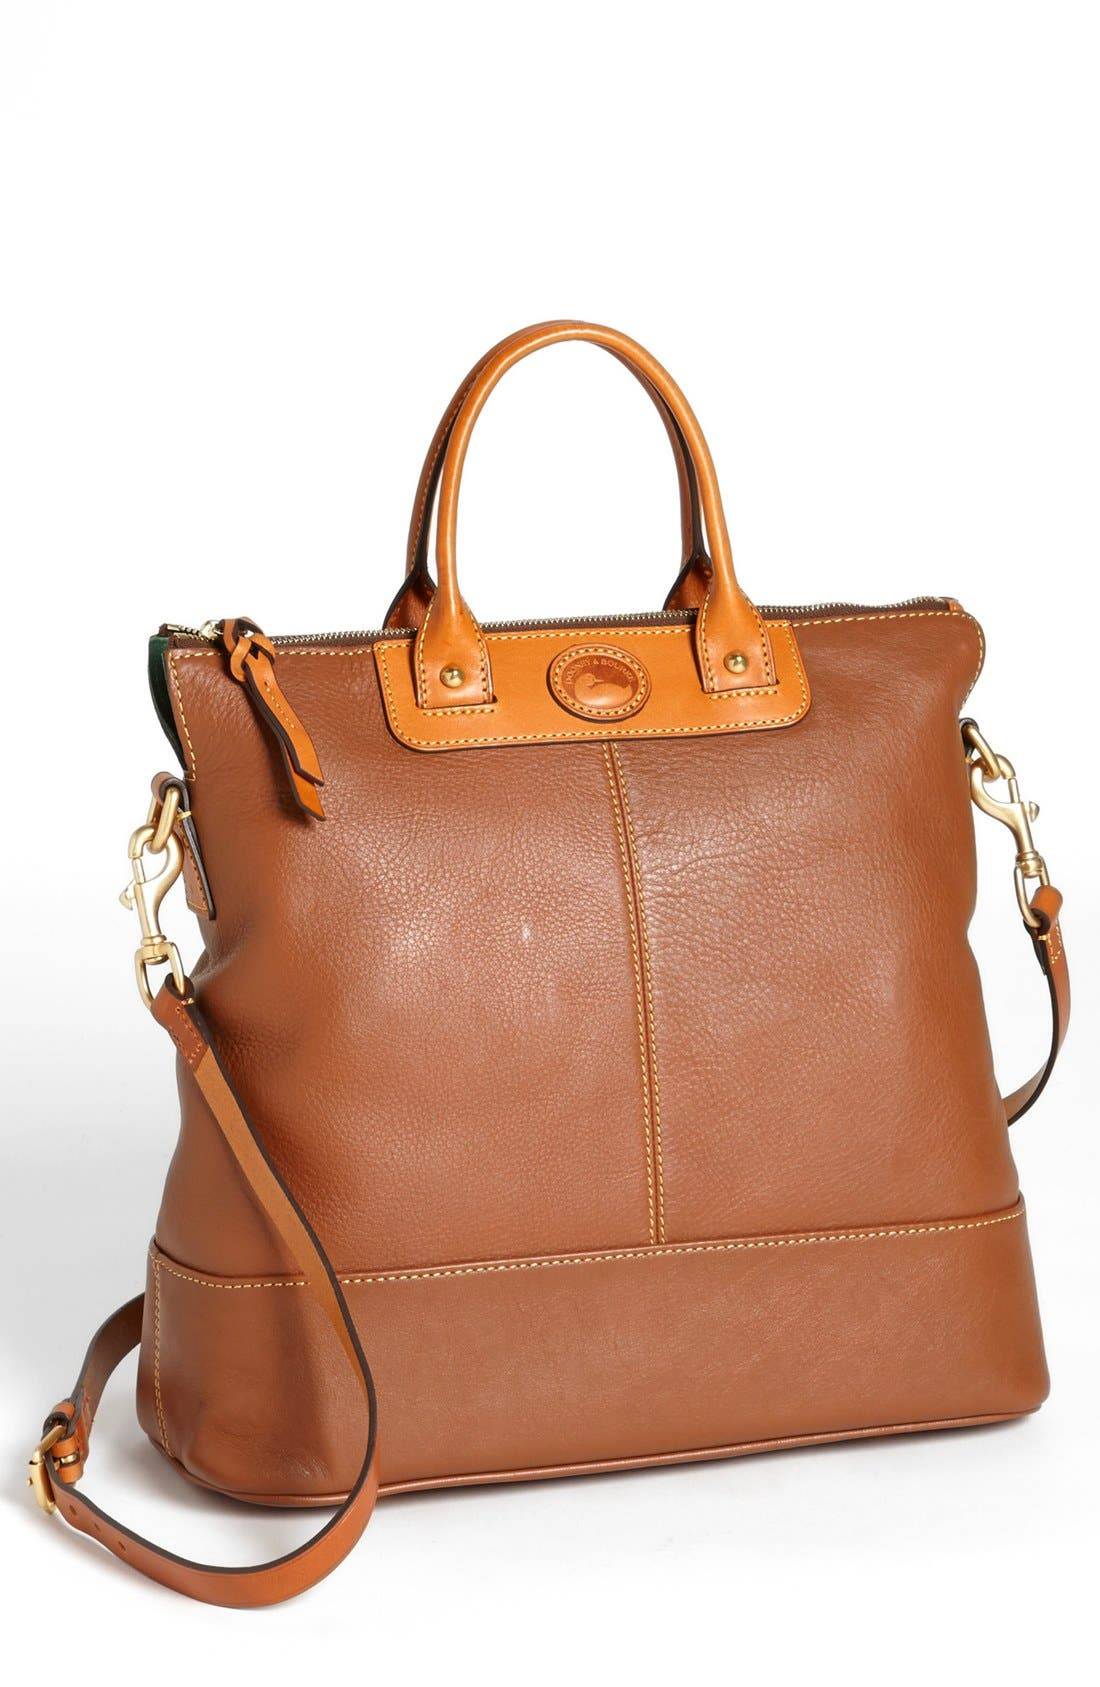 Alternate Image 1 Selected - Dooney & Bourke Convertible Shopper